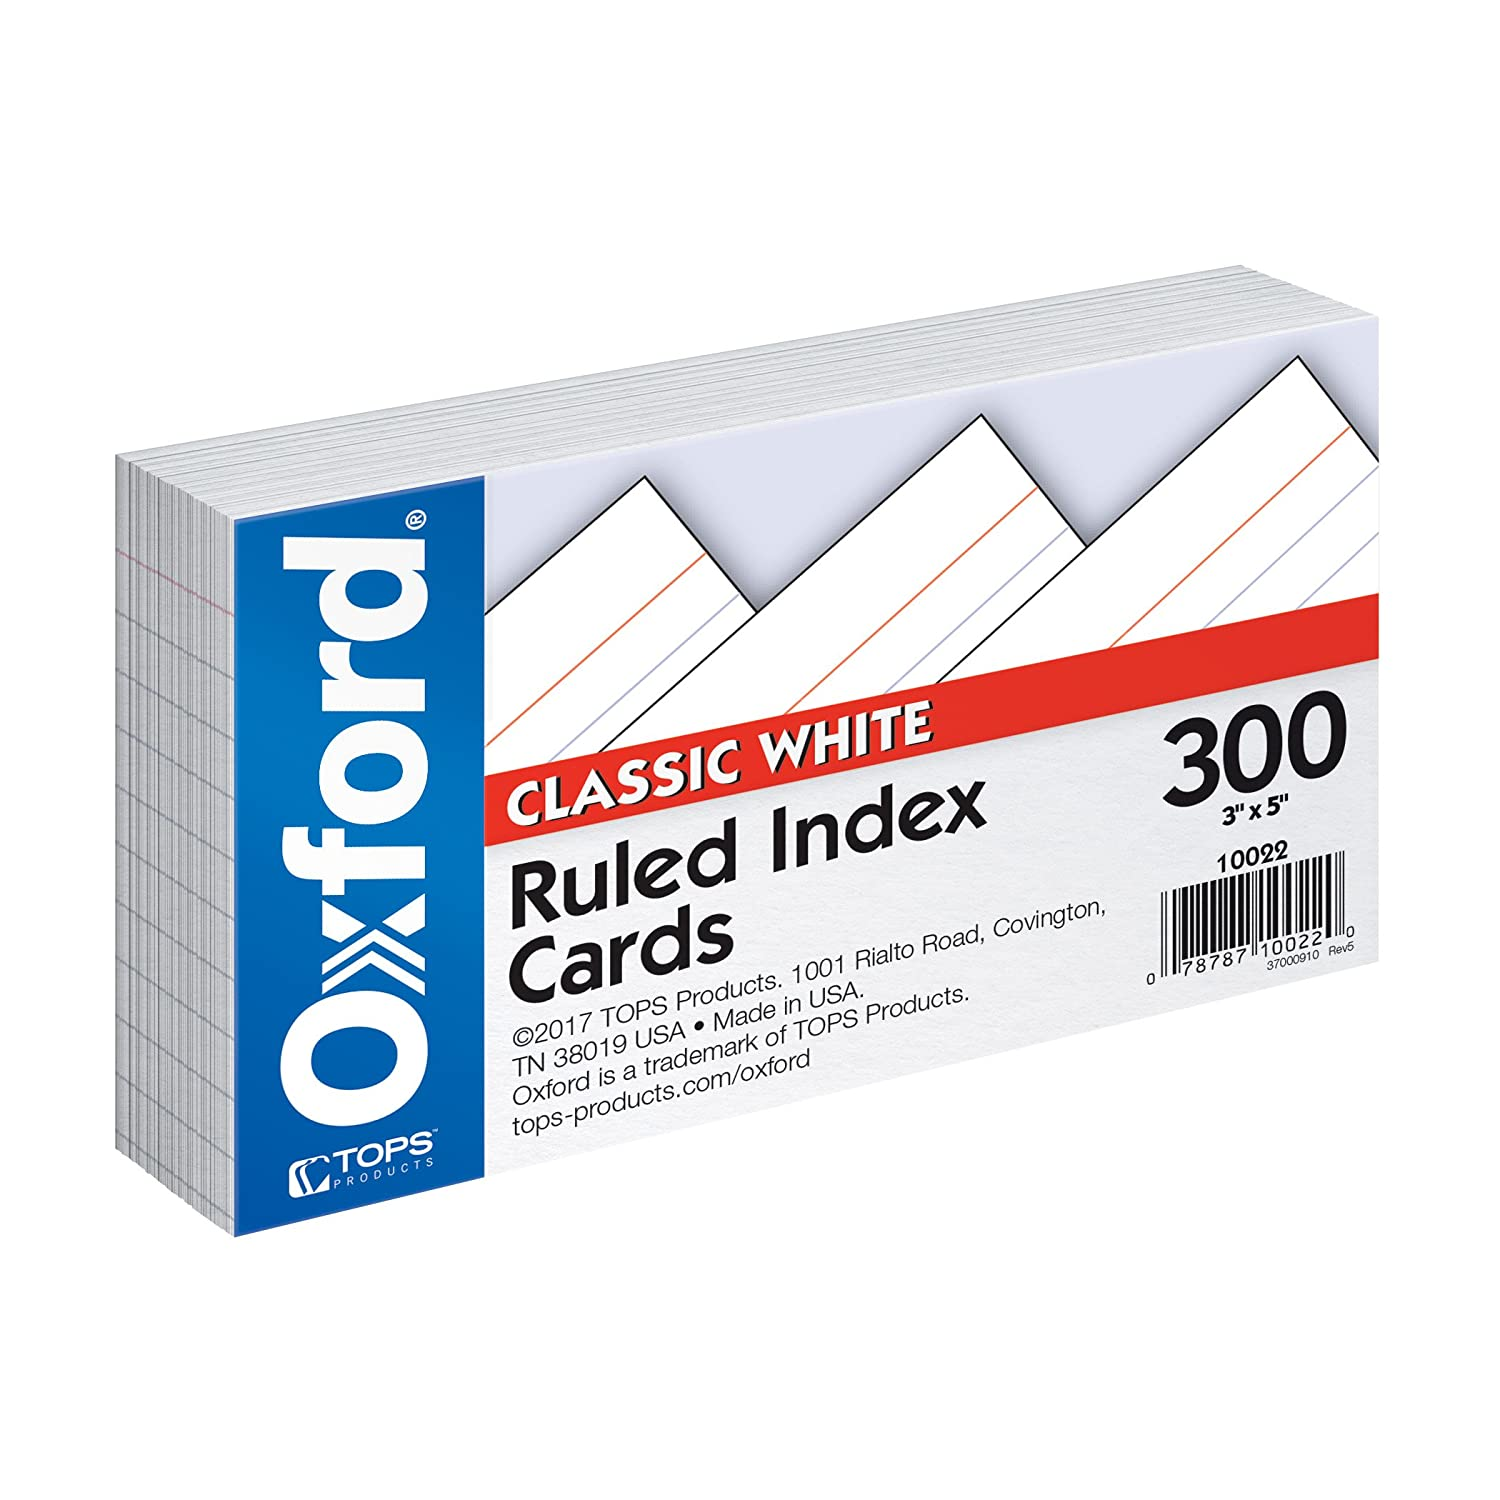 Oxford 30 Percent Recycled Index Cards, Ruled, 5-Inch x 8-Inch, White, Pack Of 300 (10003) Esselte Corporation 10003EE